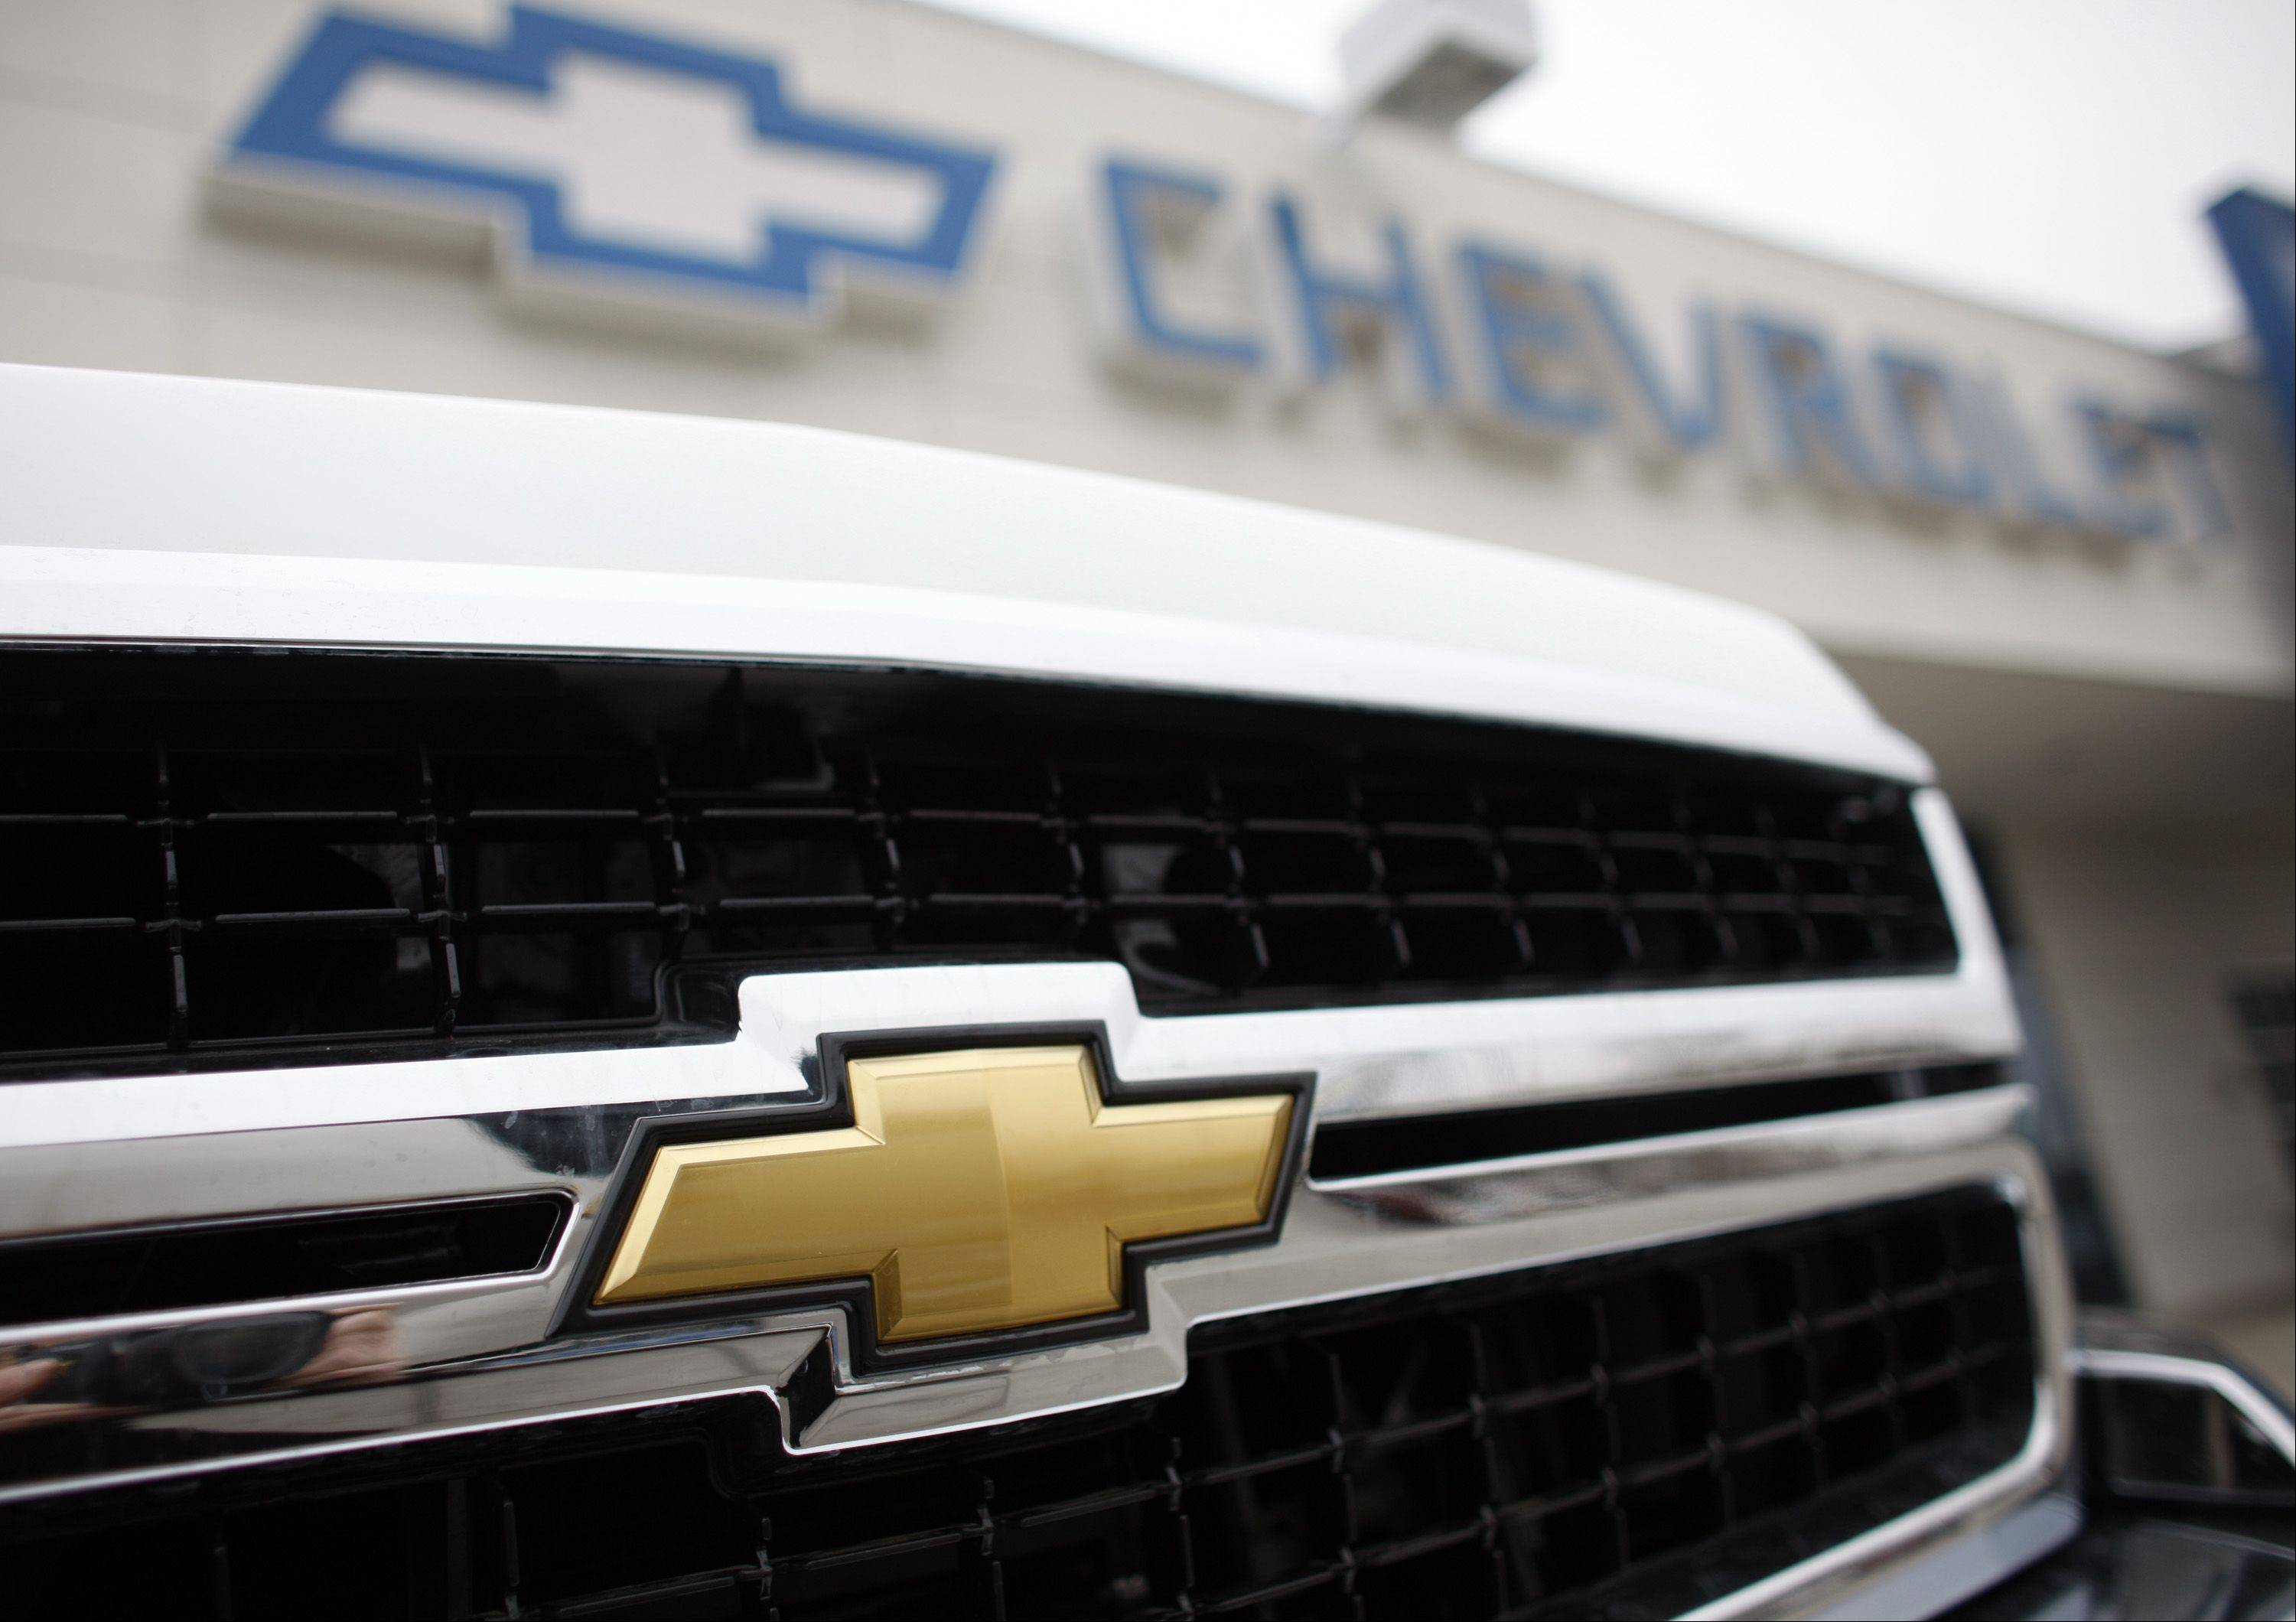 General Motors said November industrywide U.S. light-vehicle sales were the highest in almost five years, exceeding analysts� estimates while Honda Motor Co. led gains as buyers returned to showrooms after Hurricane Sandy.